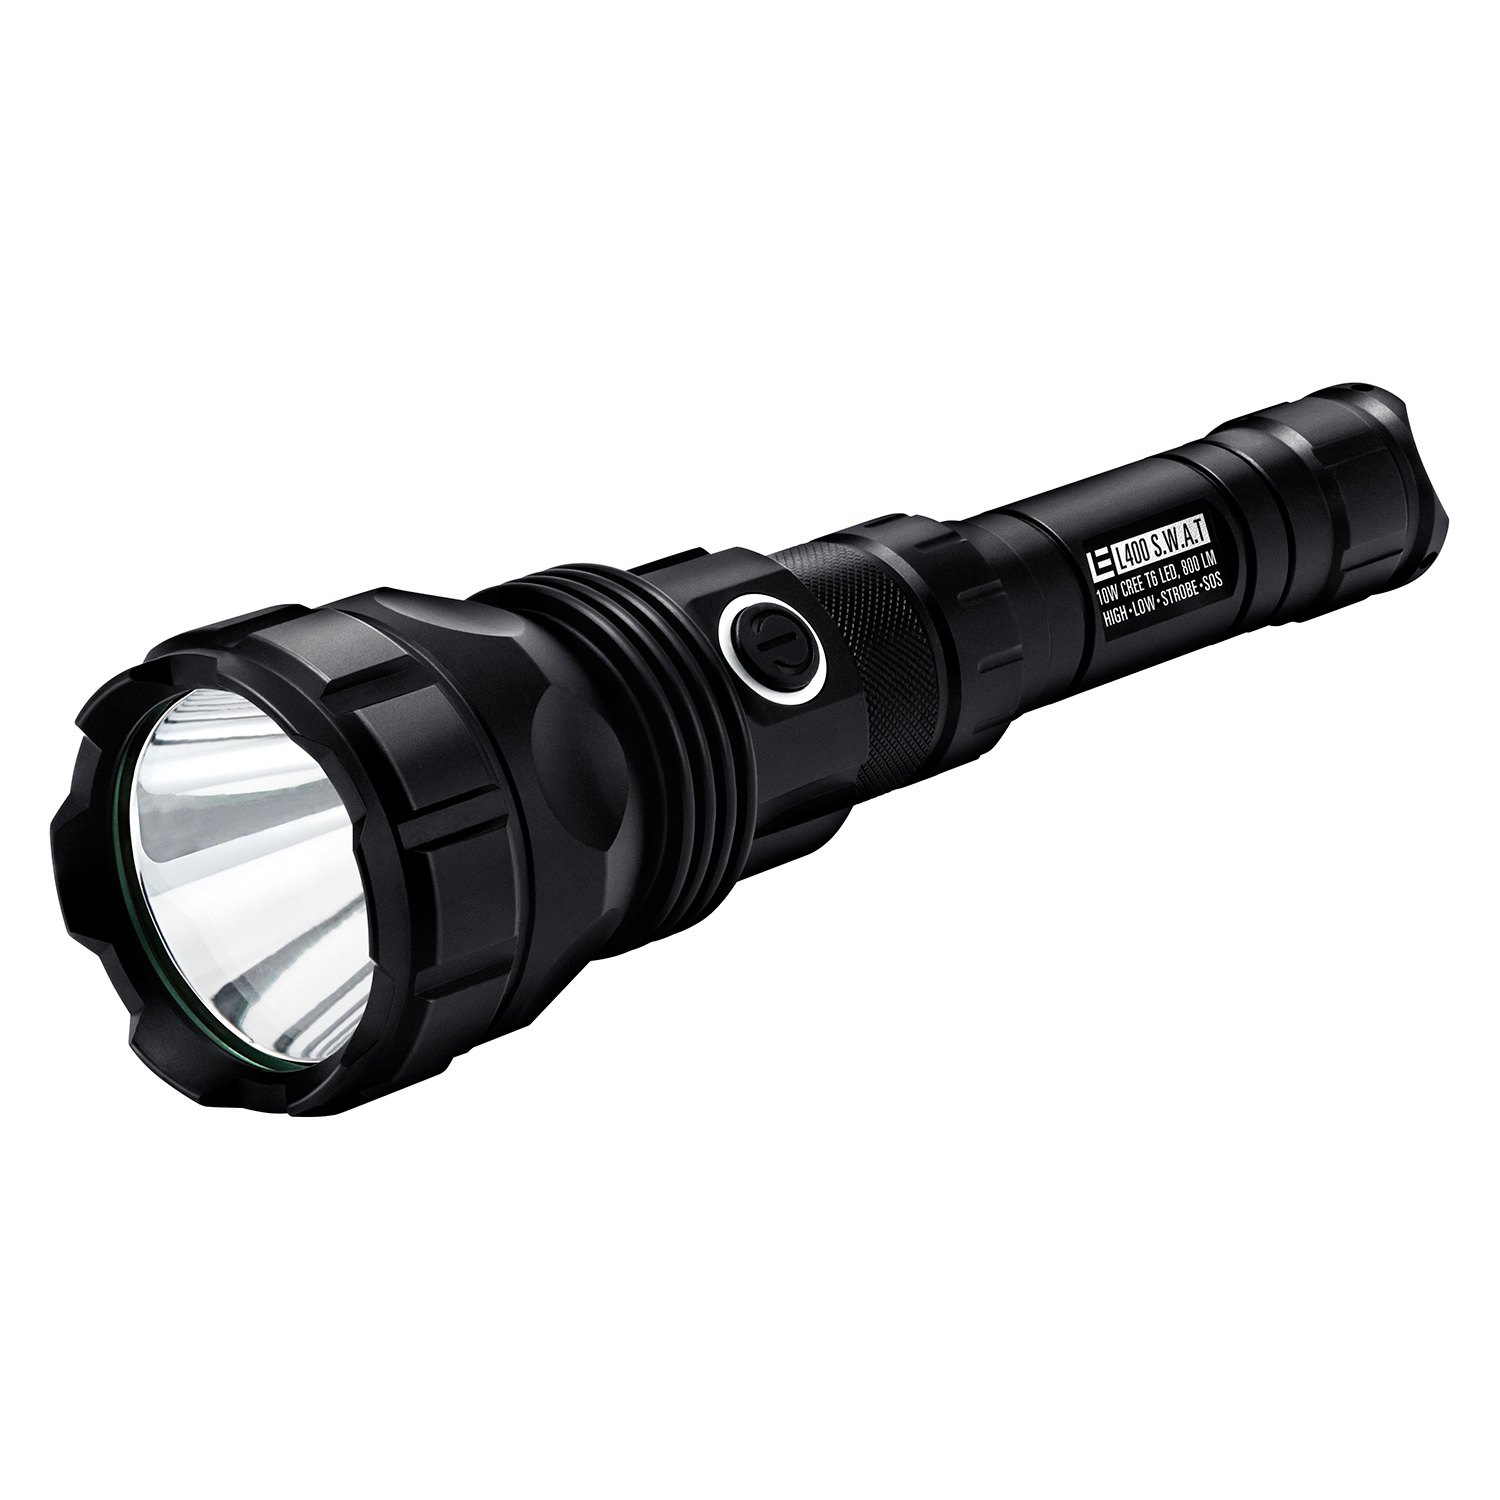 buy cheap Lumen® FLNMES1 - L400 S.W.A.T. Rechargeable LED Flashlight for 2015 RAM 1500 TRUCK Ebay & Amazon